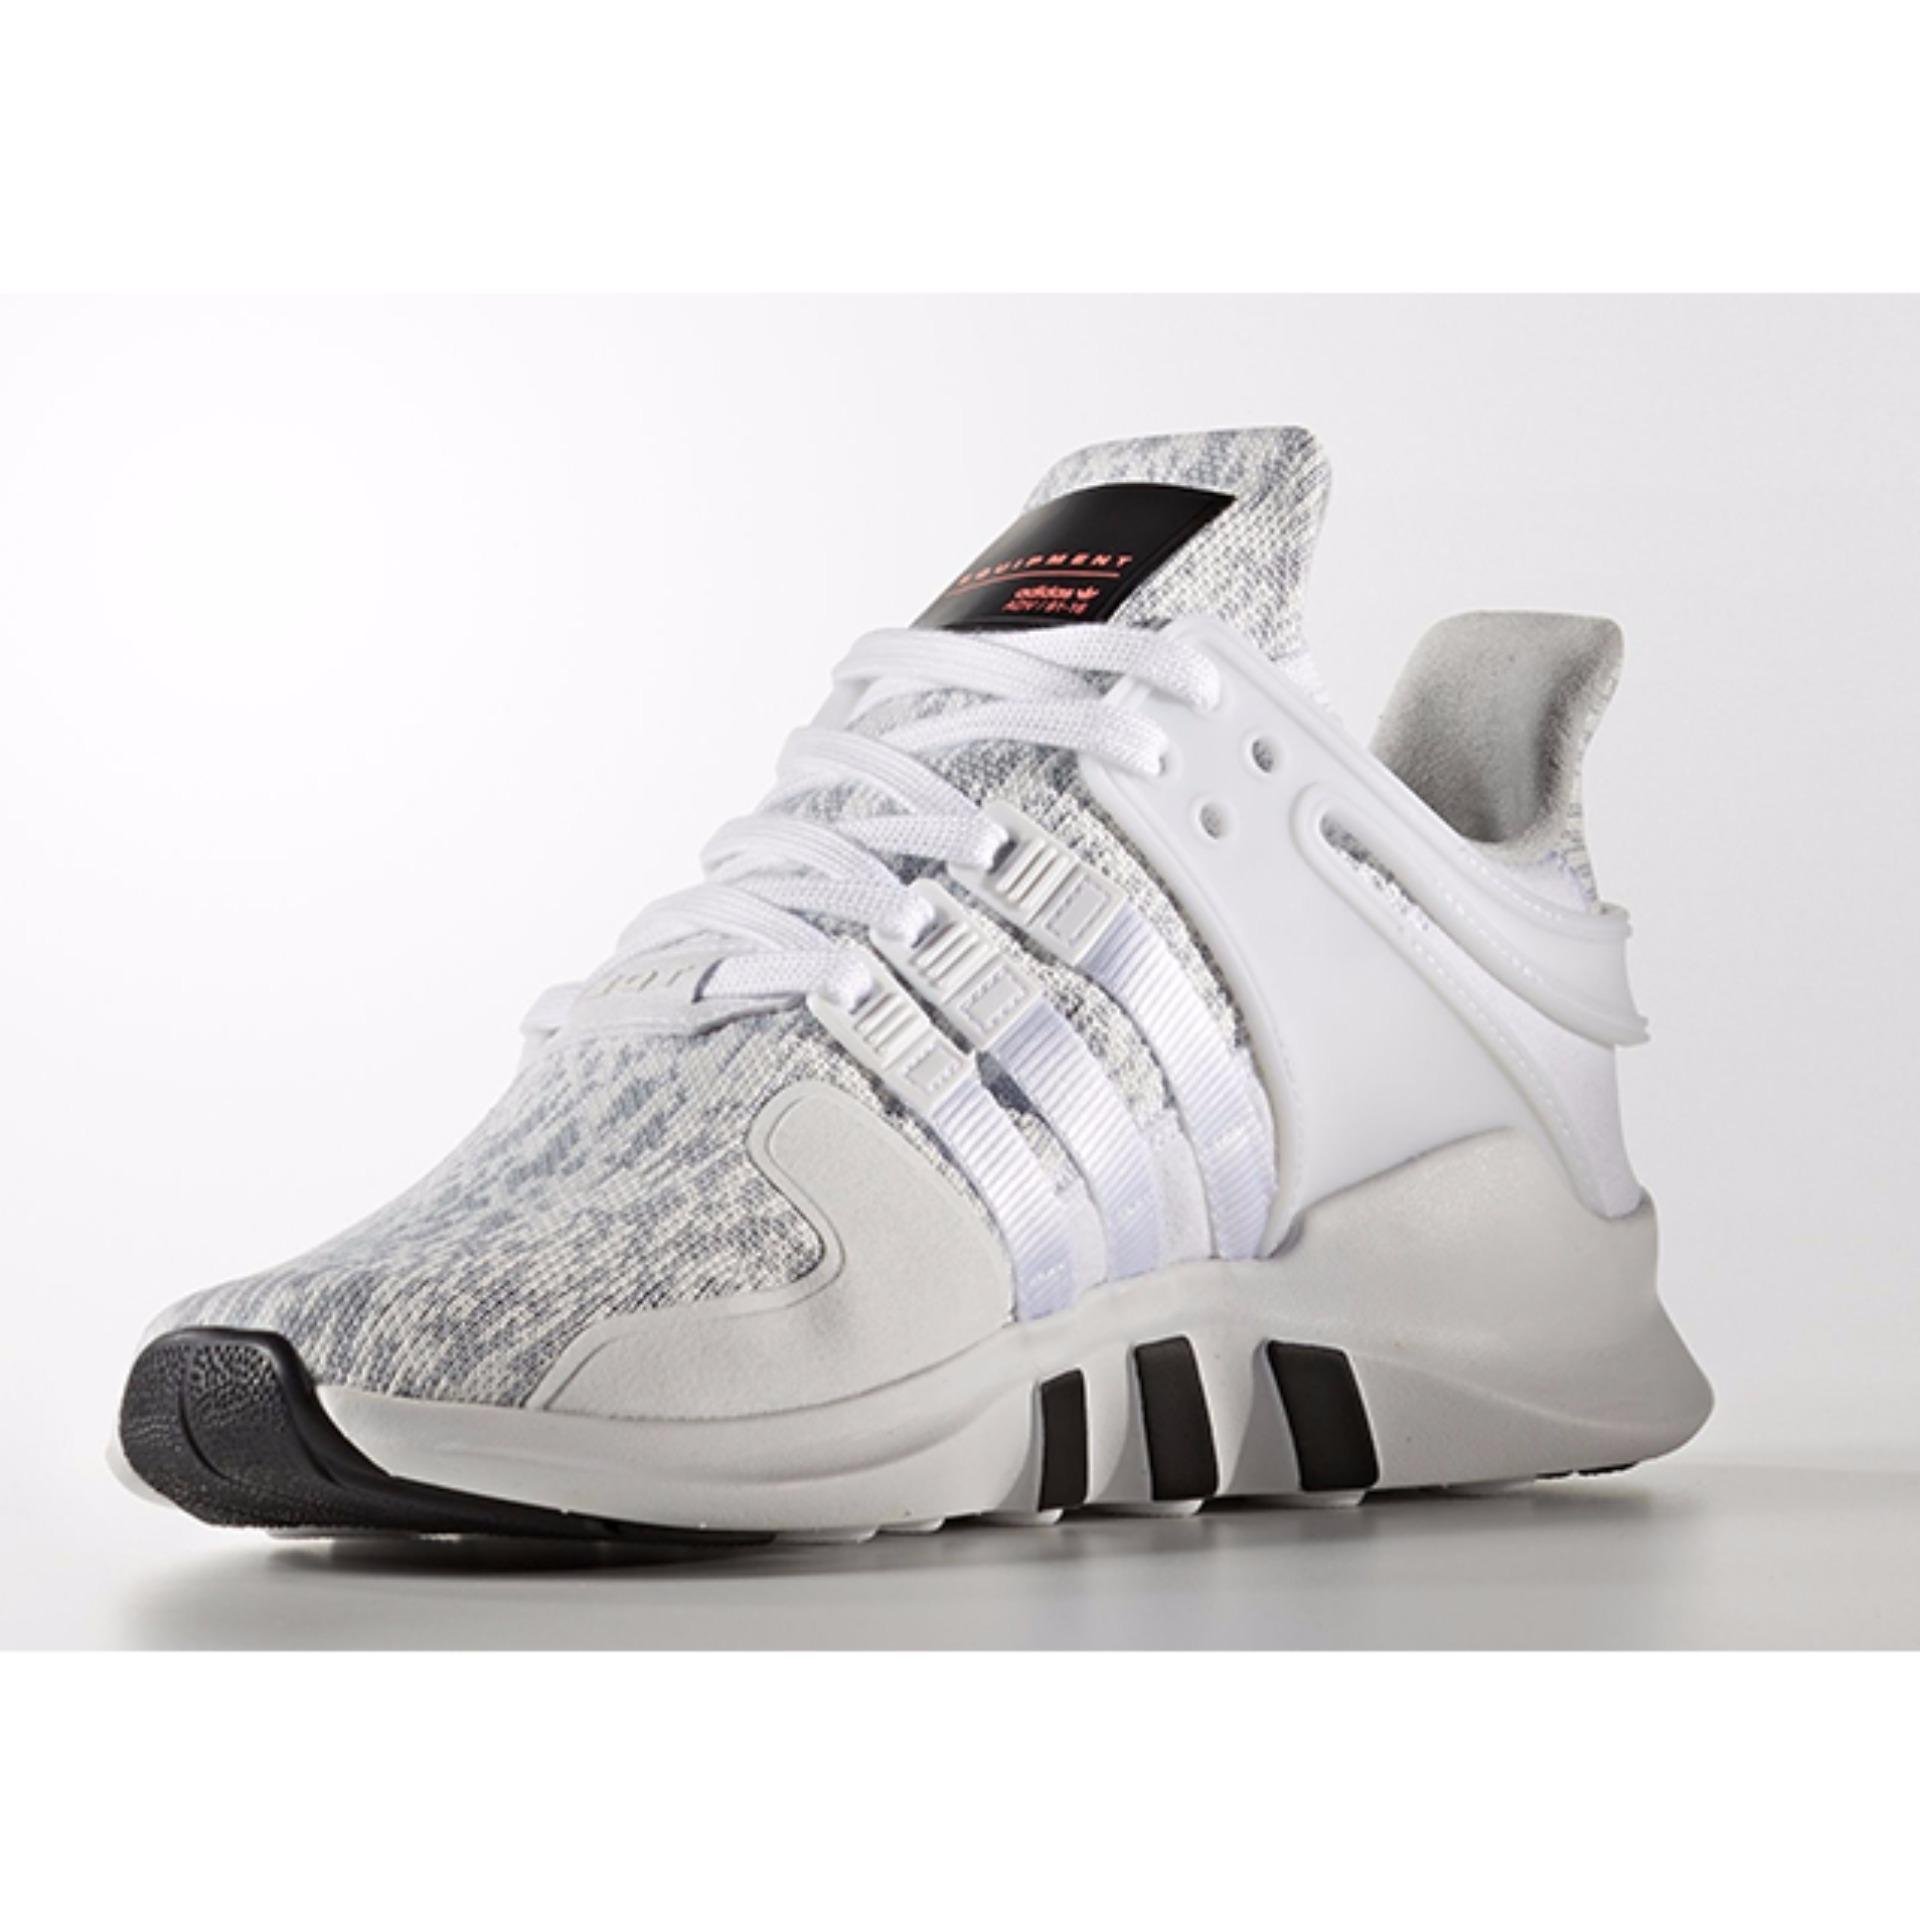 Situs Review Adidas Sepatu Sneaker Eqt Support Adv Bb1305